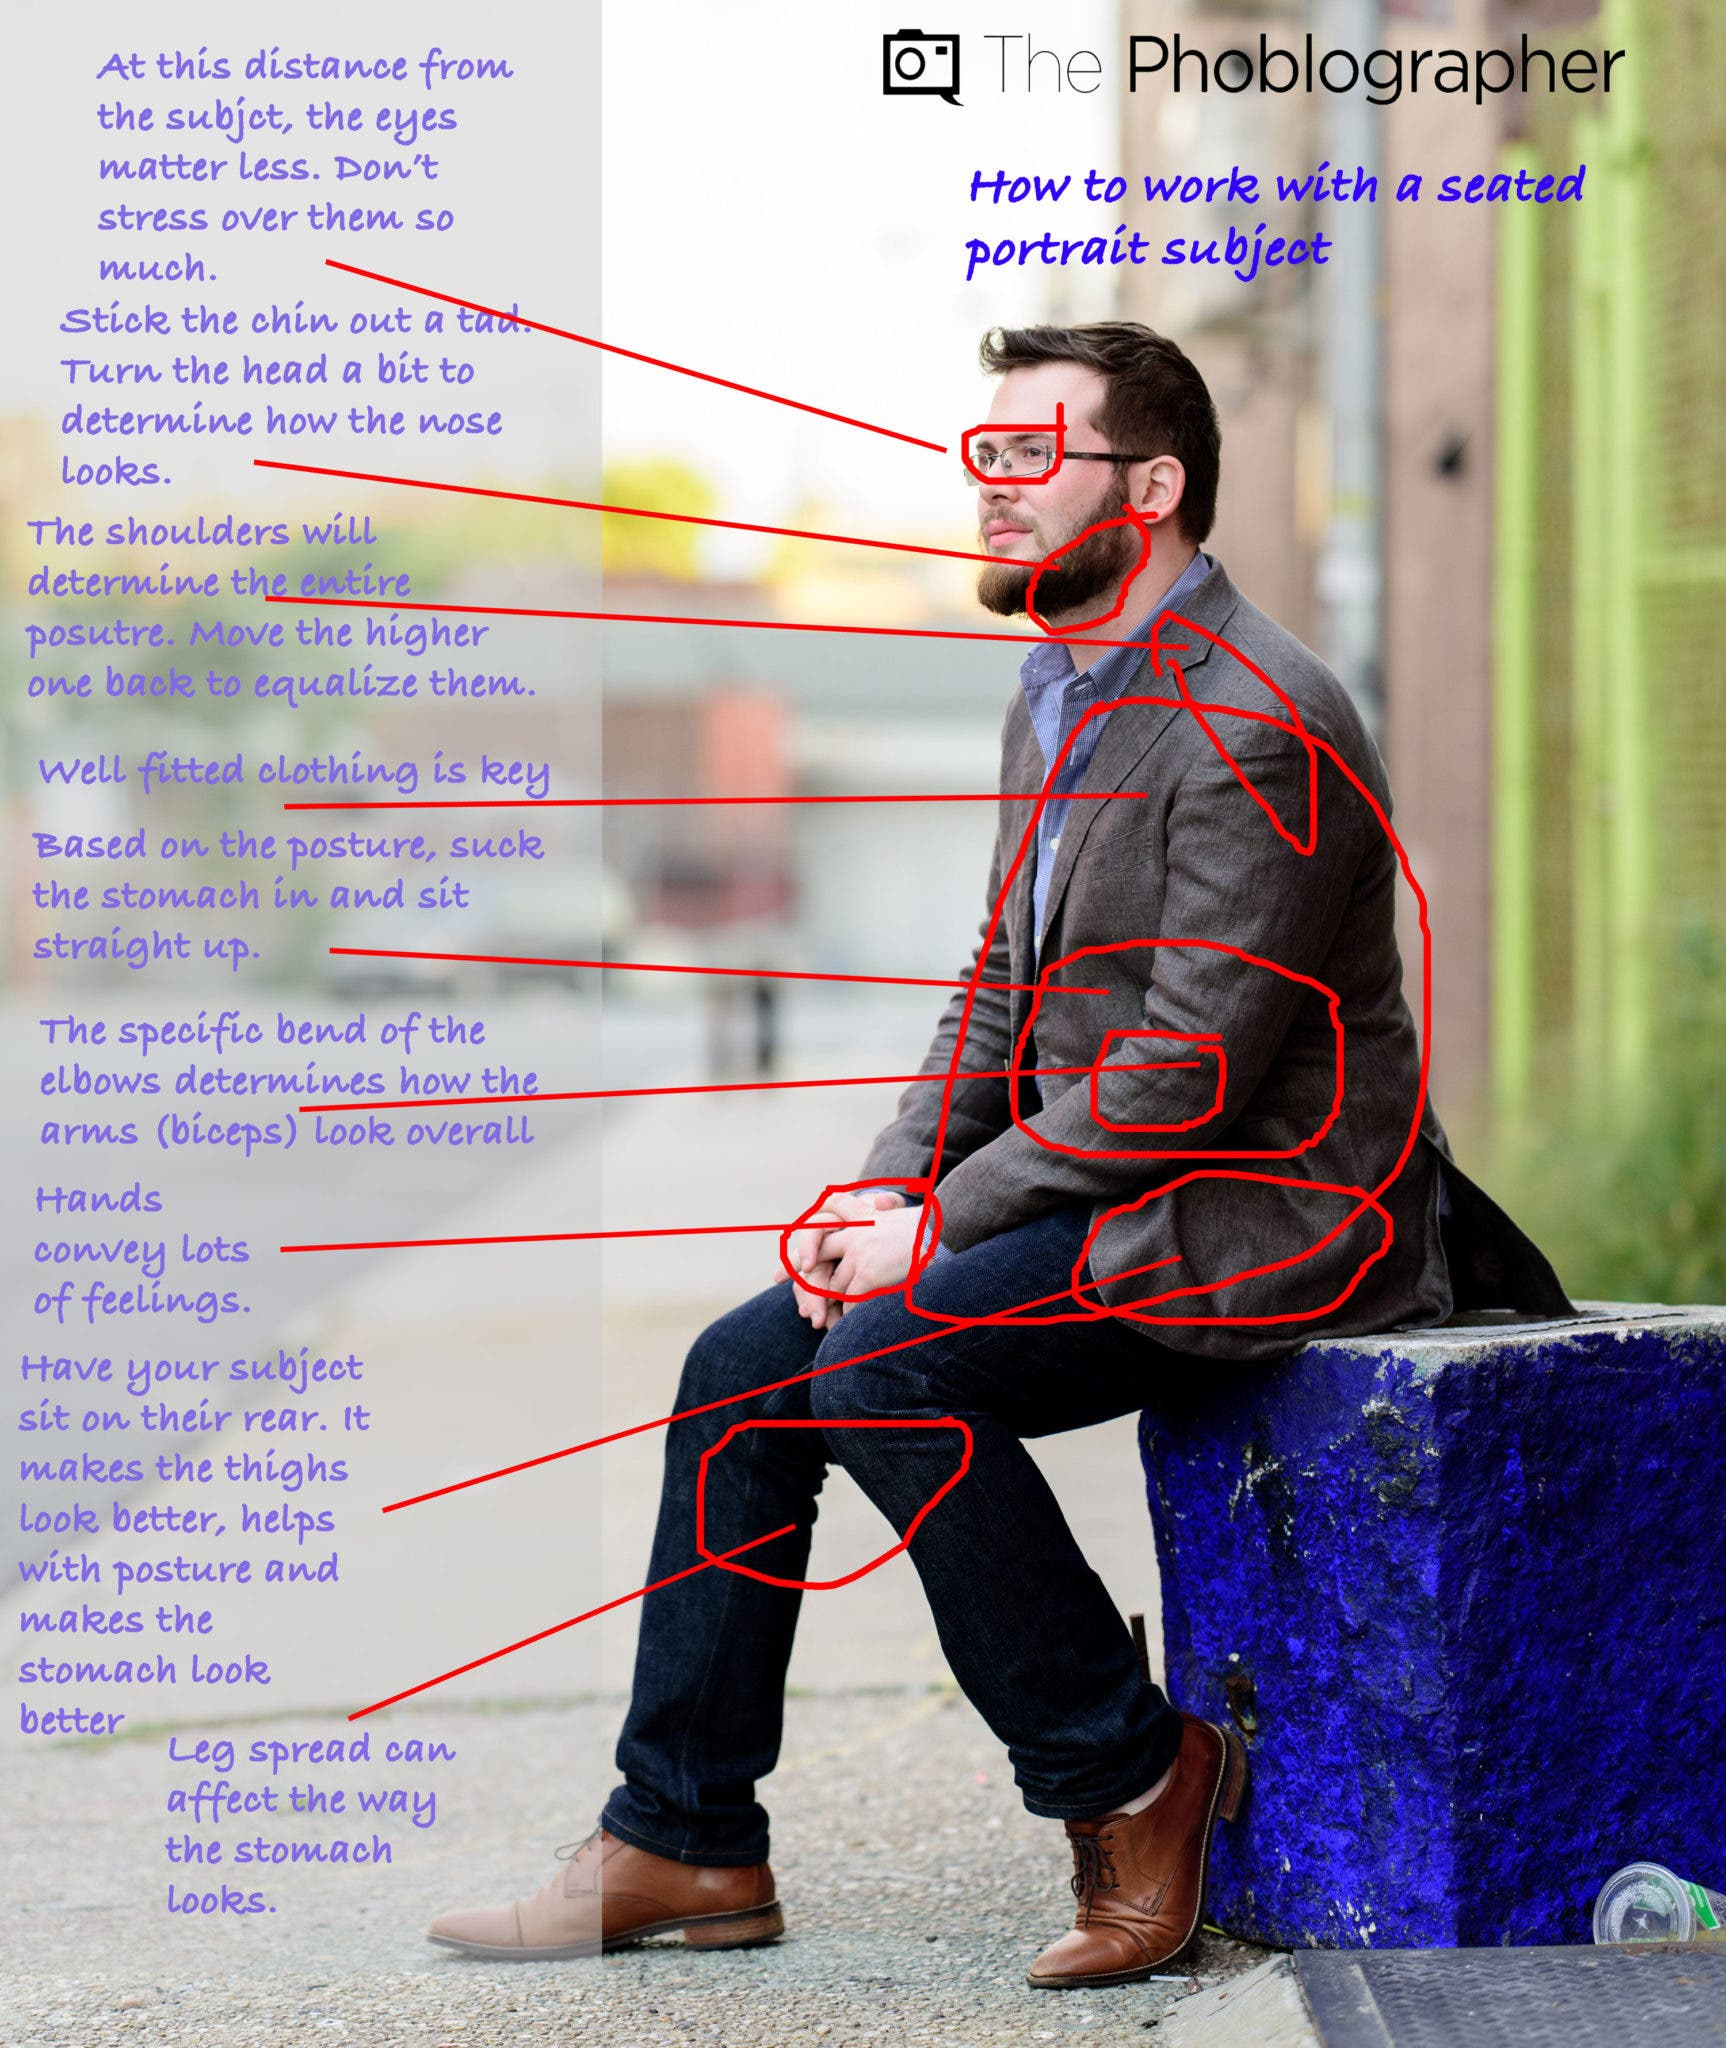 Infographic-Chris-Gampat-The-Phoblographer-Sitting-Portrait-Infographic-(1-of-1)ISO-4001-250-sec-at-f---2.2